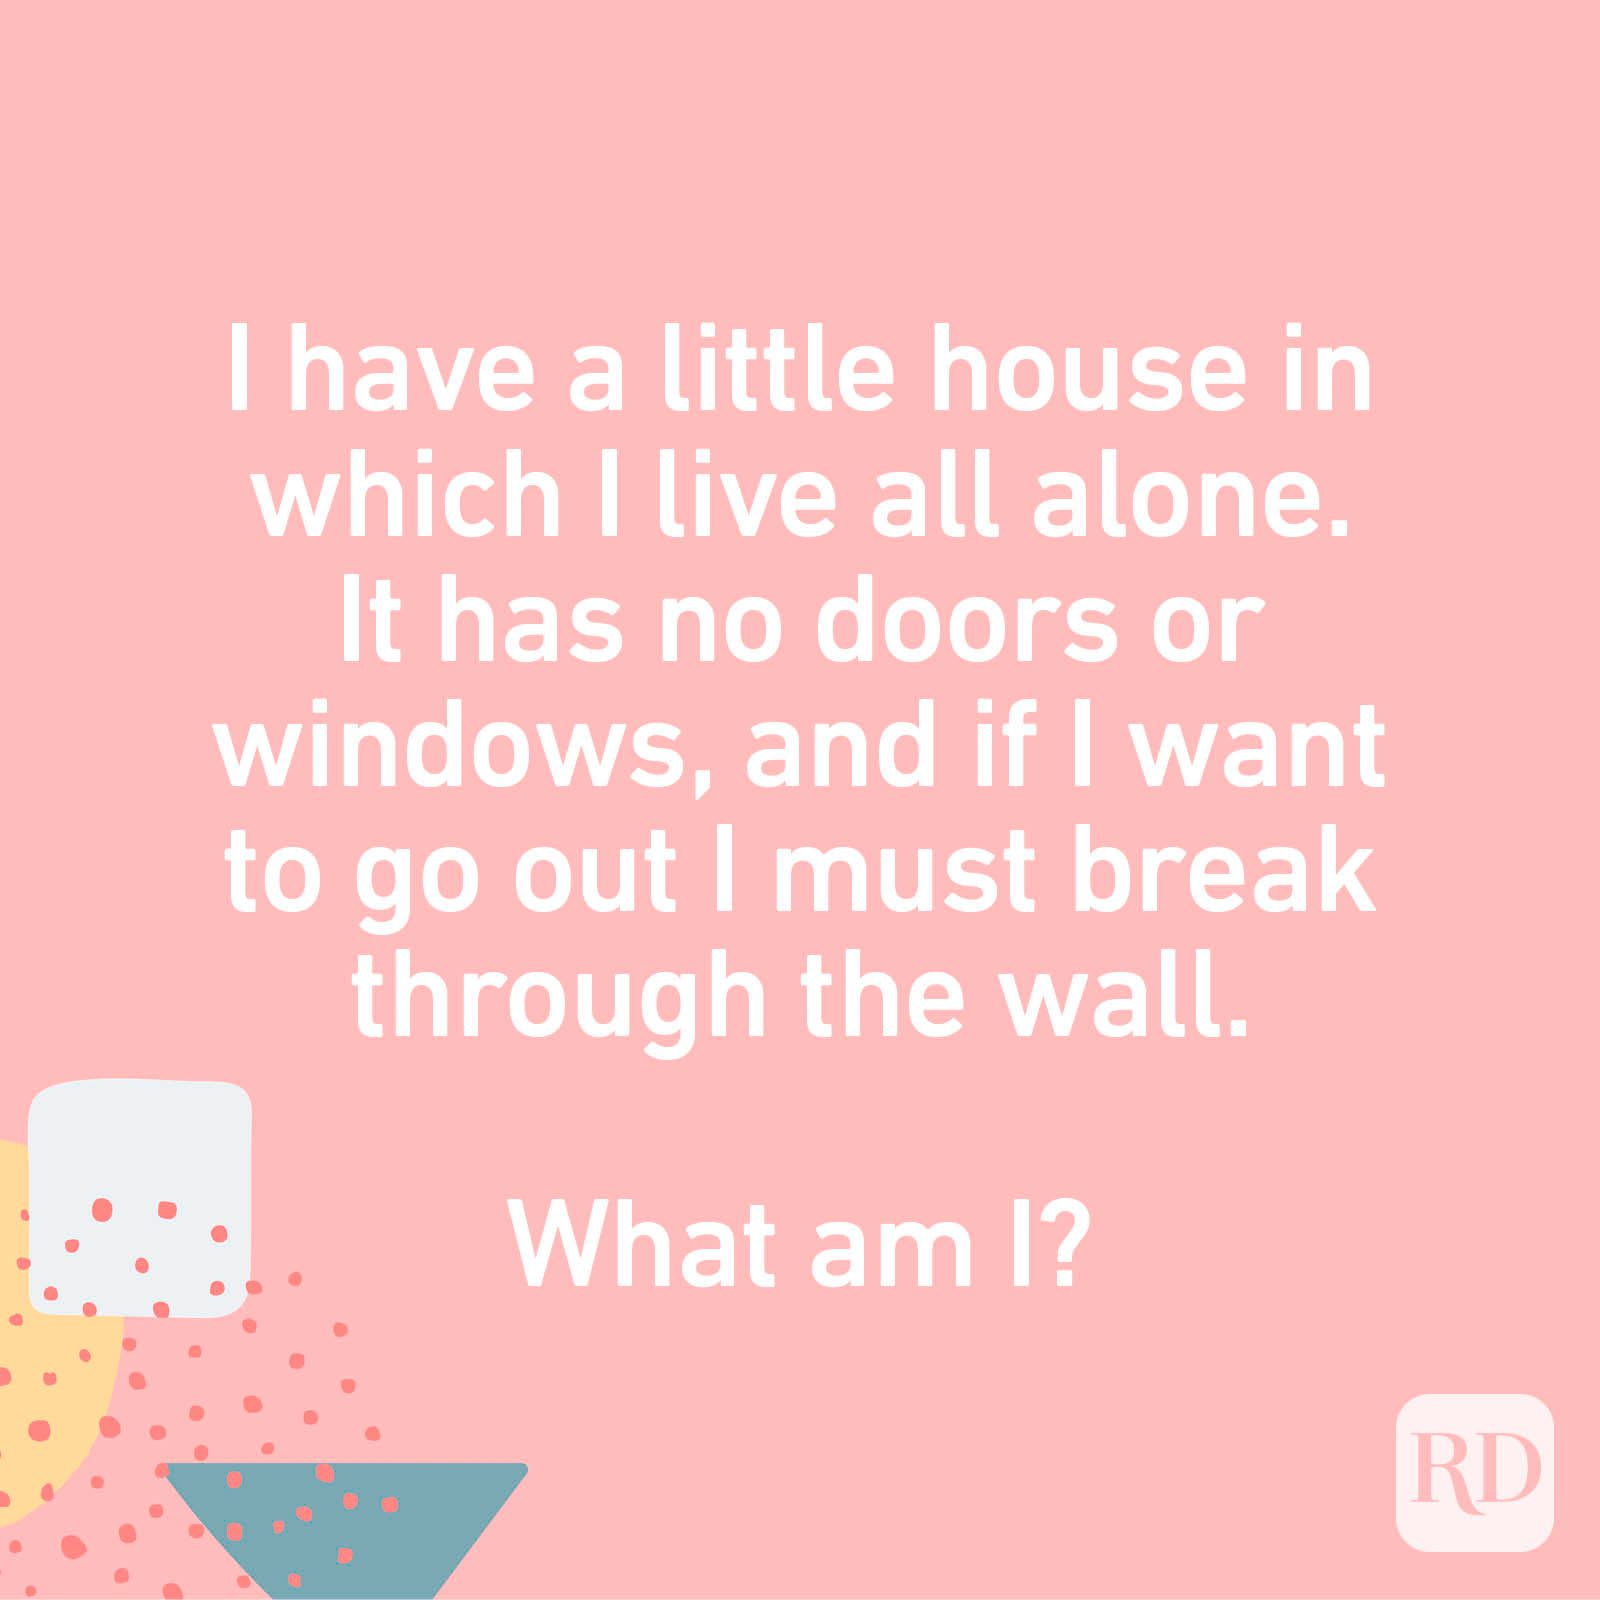 I have a little house in which I live all alone. It has no doors or windows, and if I want to go out I must break through the wall. What am I?